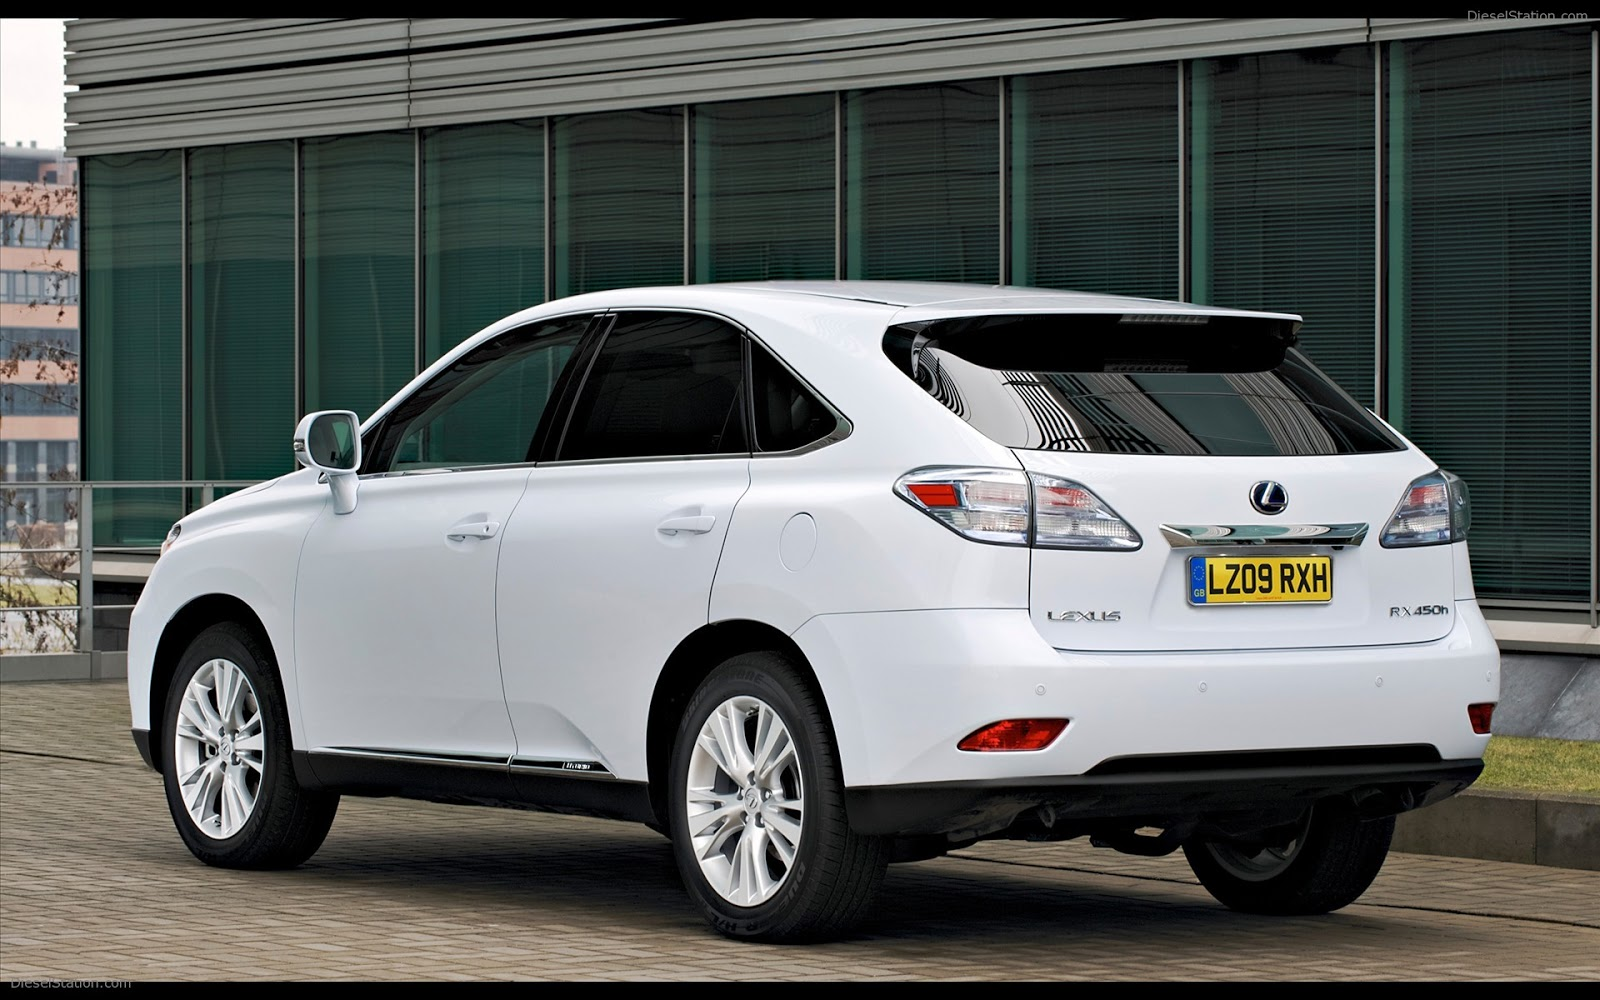 ace cool cars for rent act now white black lexus rx450h hybrid for rent. Black Bedroom Furniture Sets. Home Design Ideas